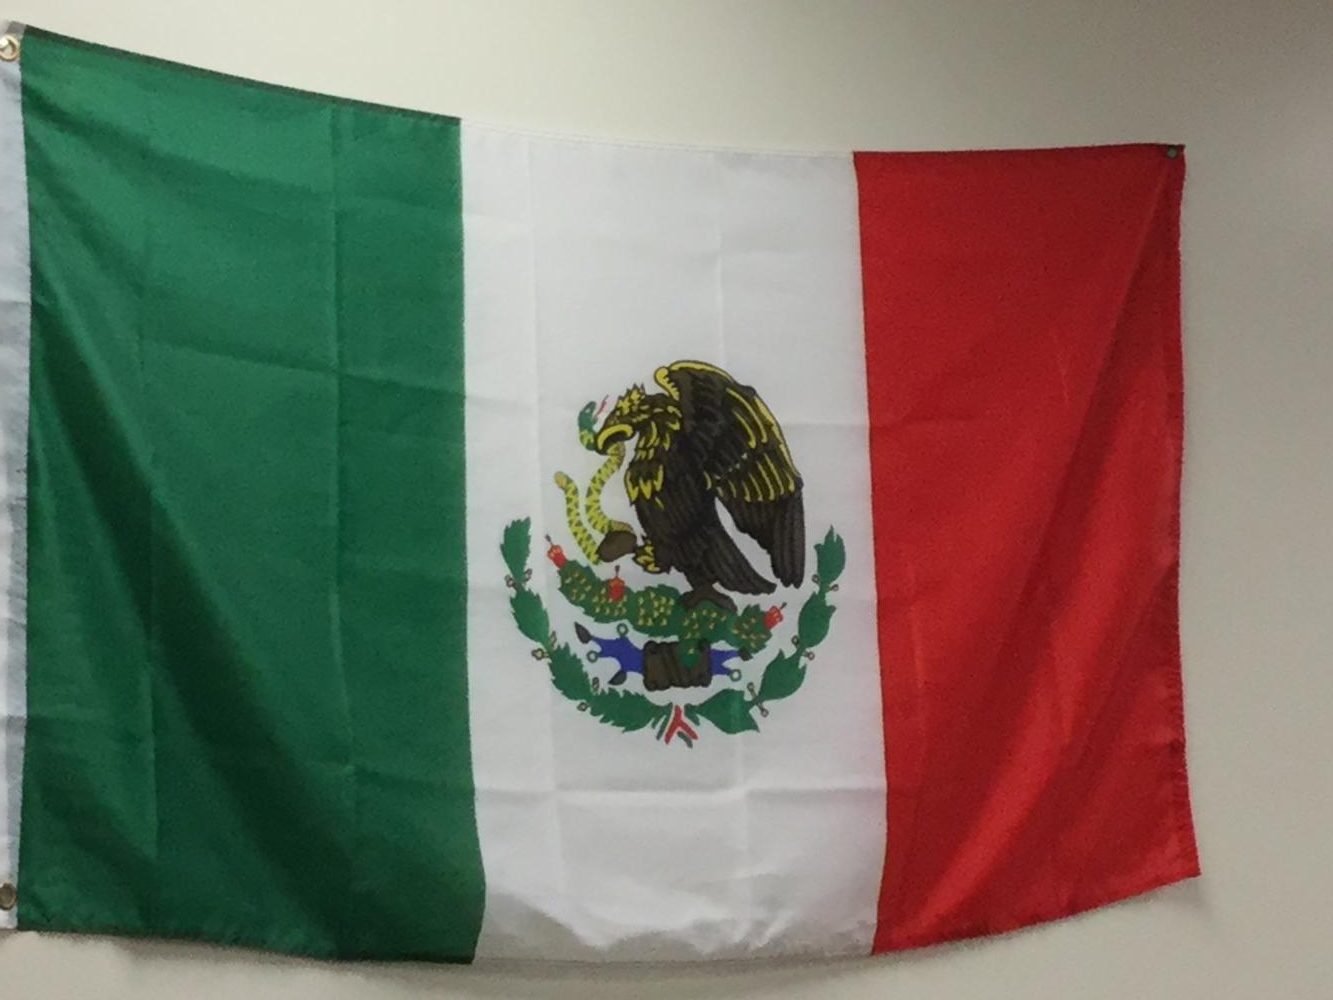 Mexican Independence Day allows those of Mexican heritage to embrace their roots and celebrate their culture.